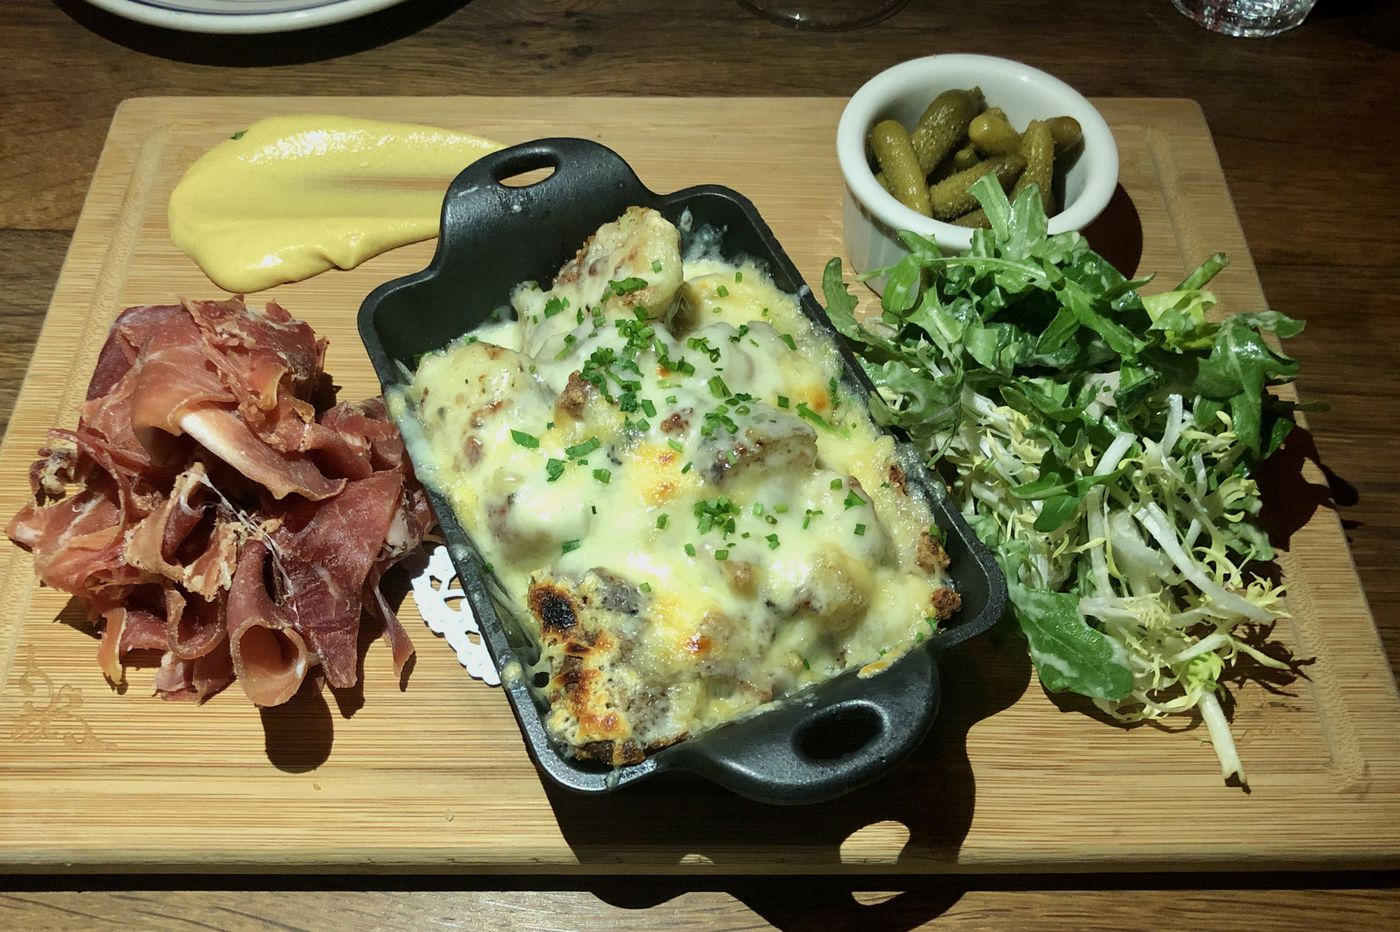 At Good King Tavern, Sundays the French bistro way, with hot raclette and weird wine